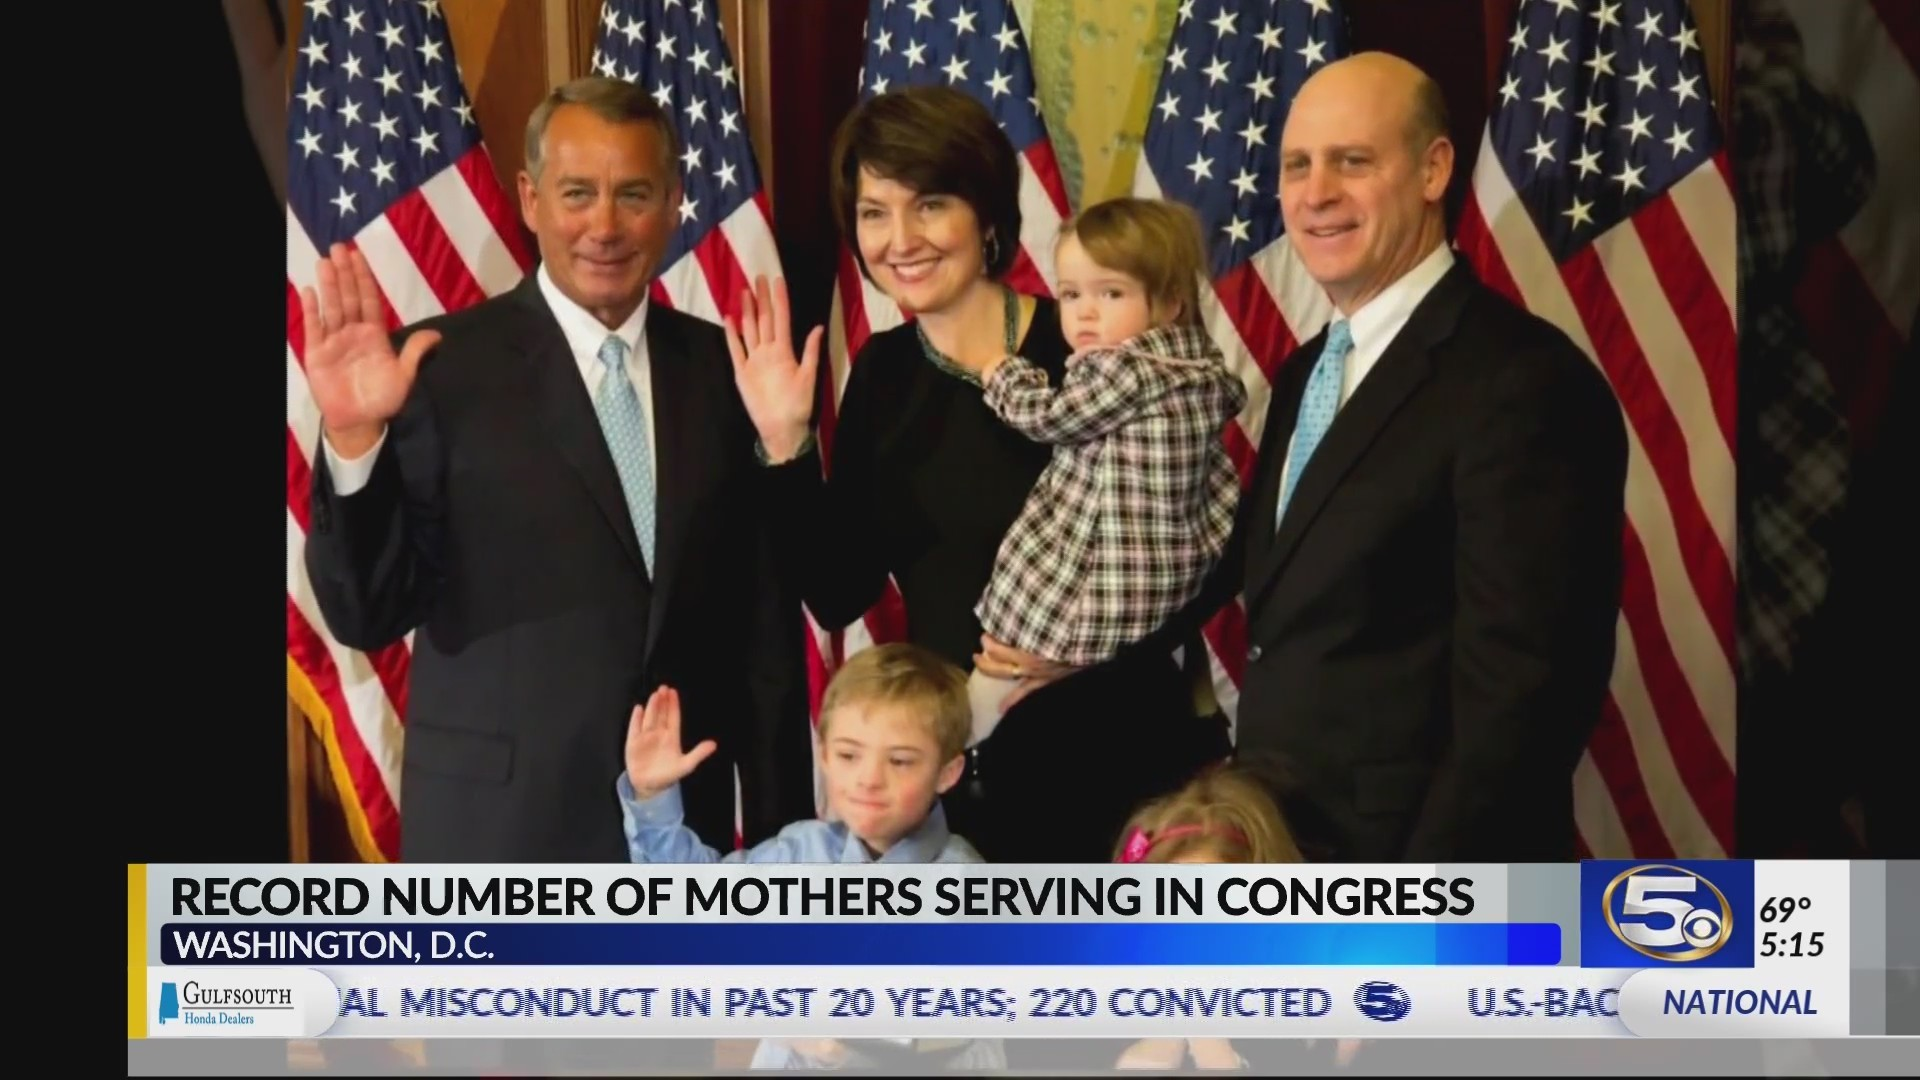 VIDEO: More moms than ever serve in U.S. Congress